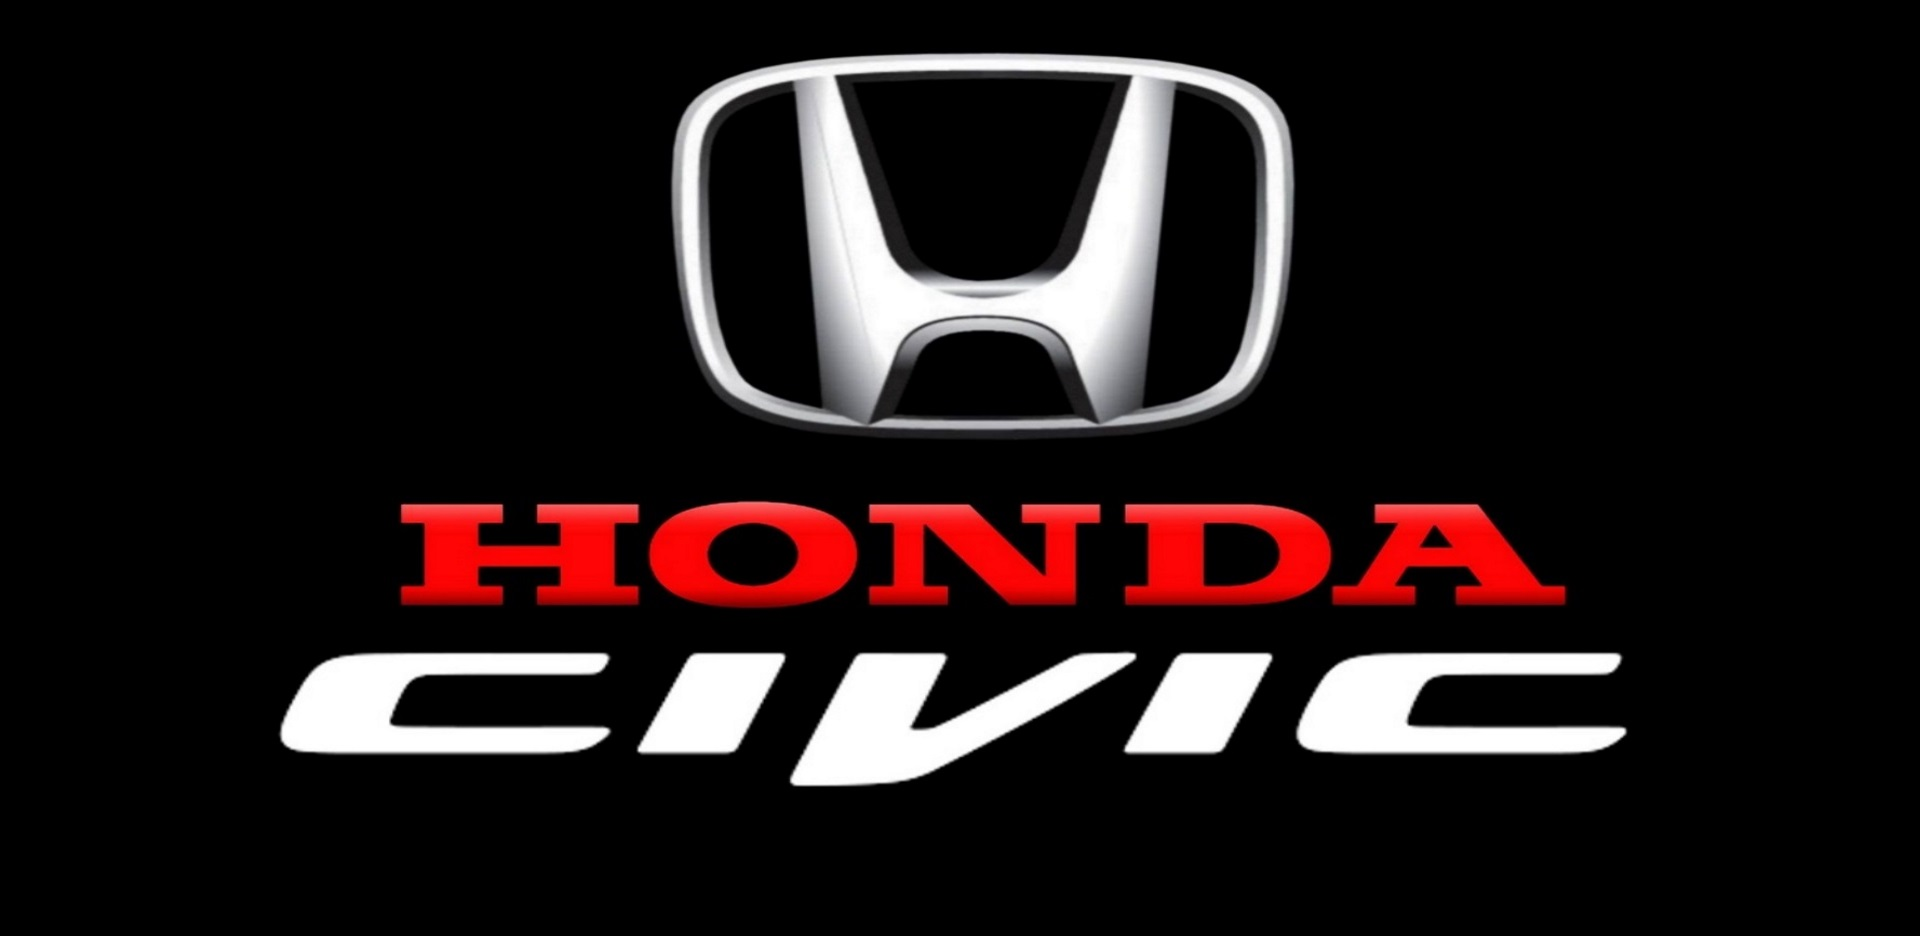 civic wallpaper honda symbol - photo #5